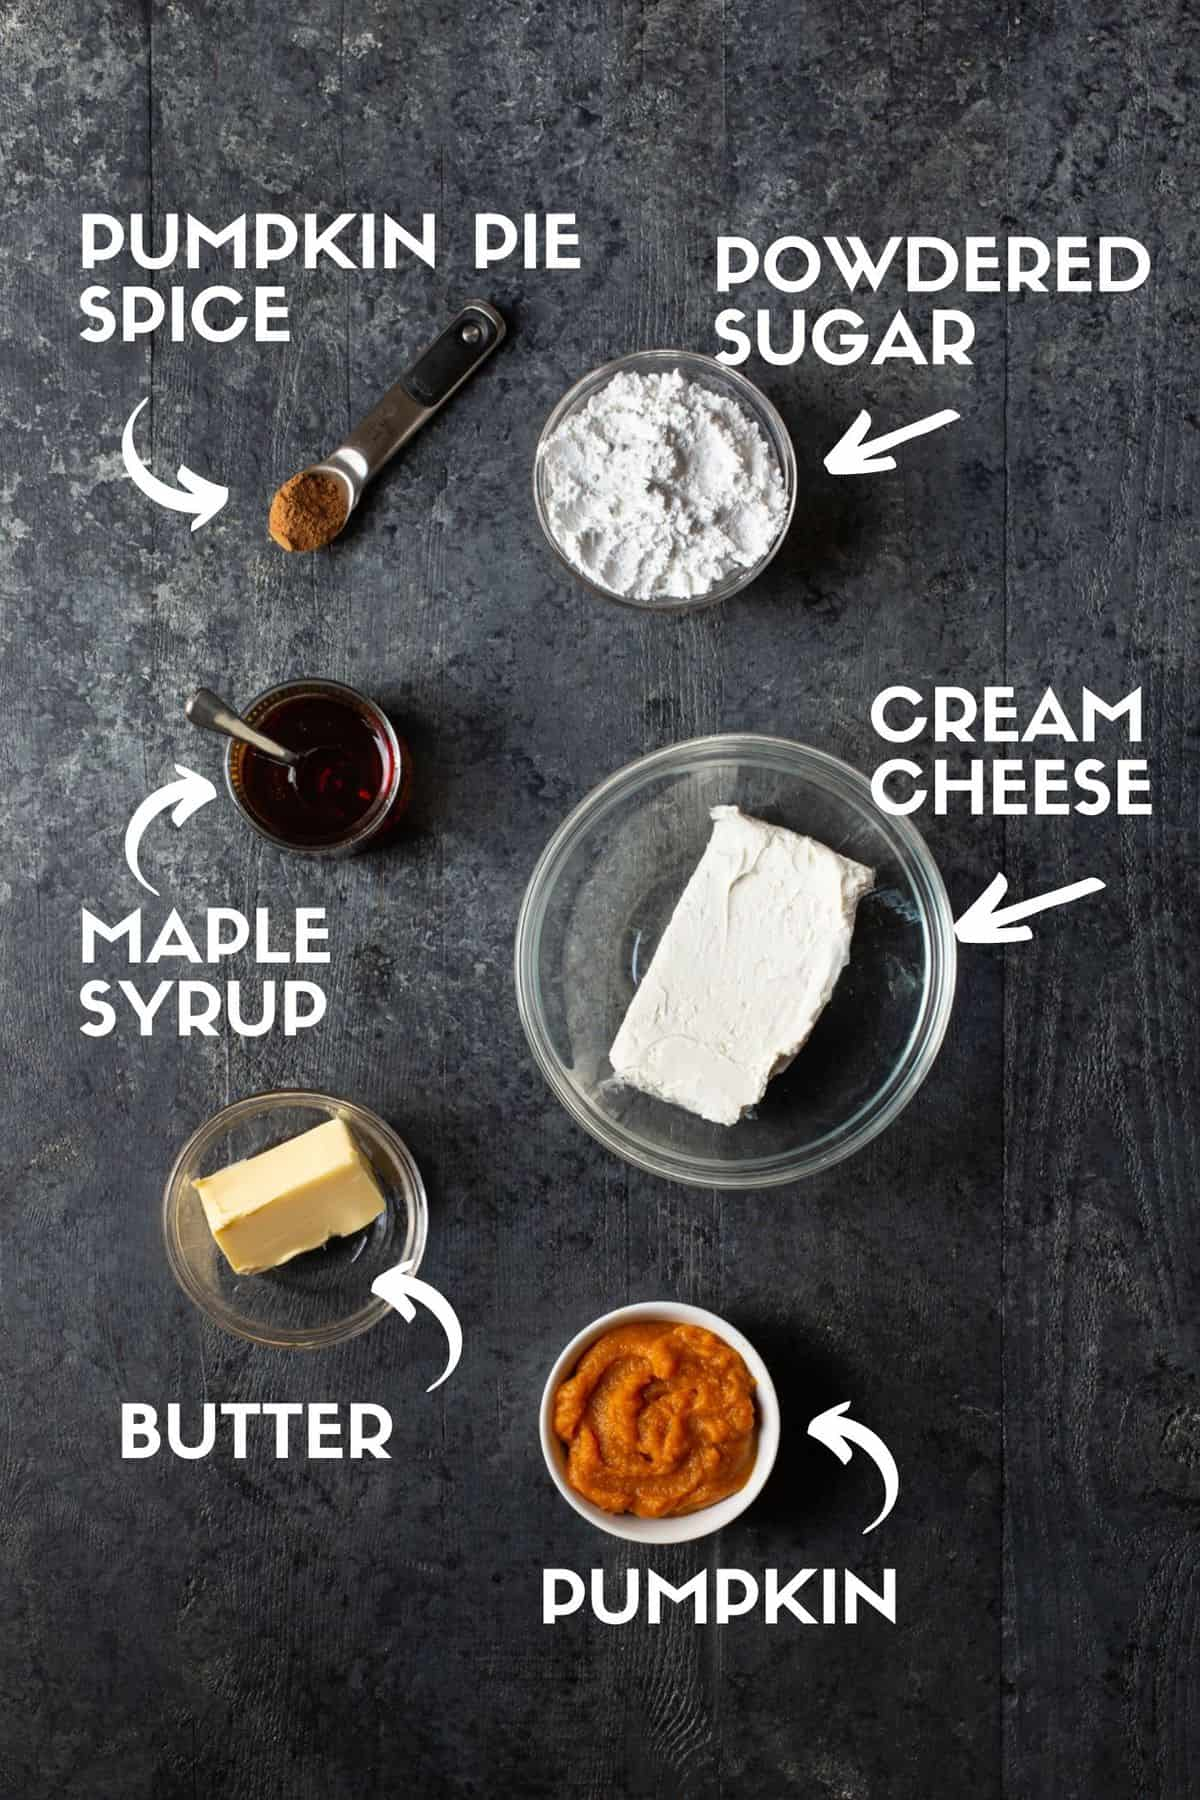 Ingredients for dip including cream cheese, butter, powdered sugar, maple syrup & pumpkin pie spice